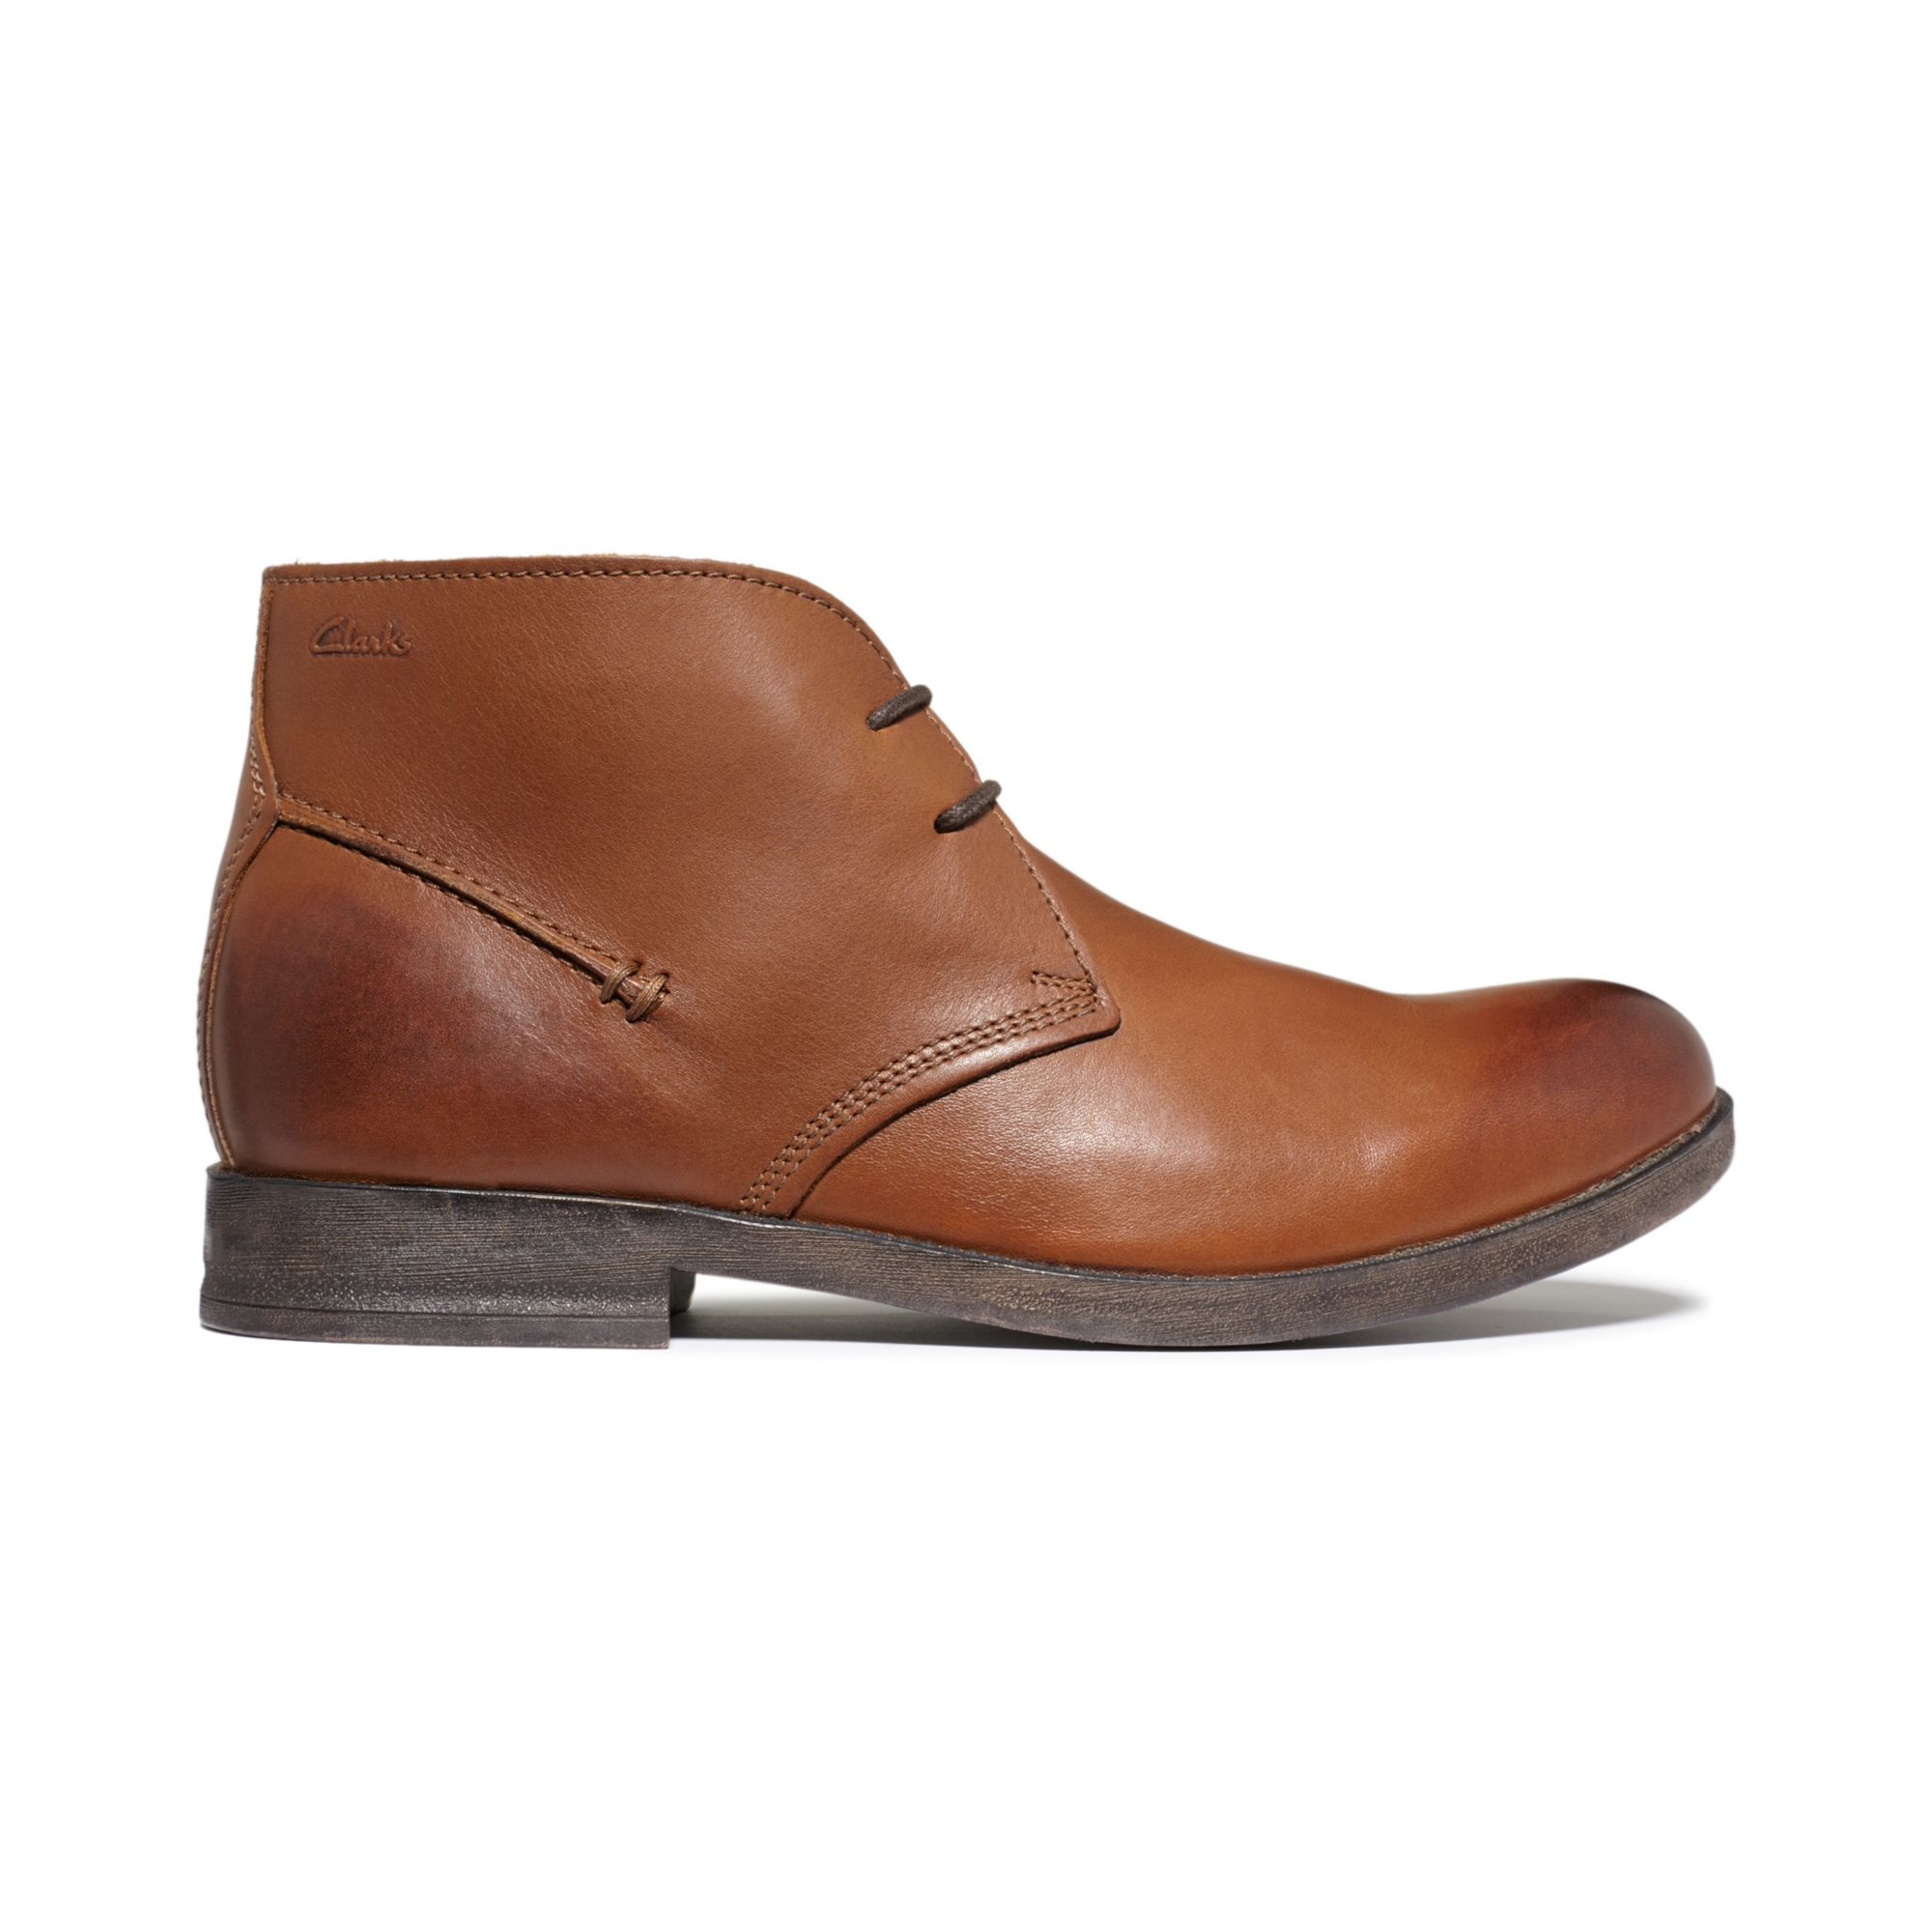 clarks goby hi chukka boots in brown for brown